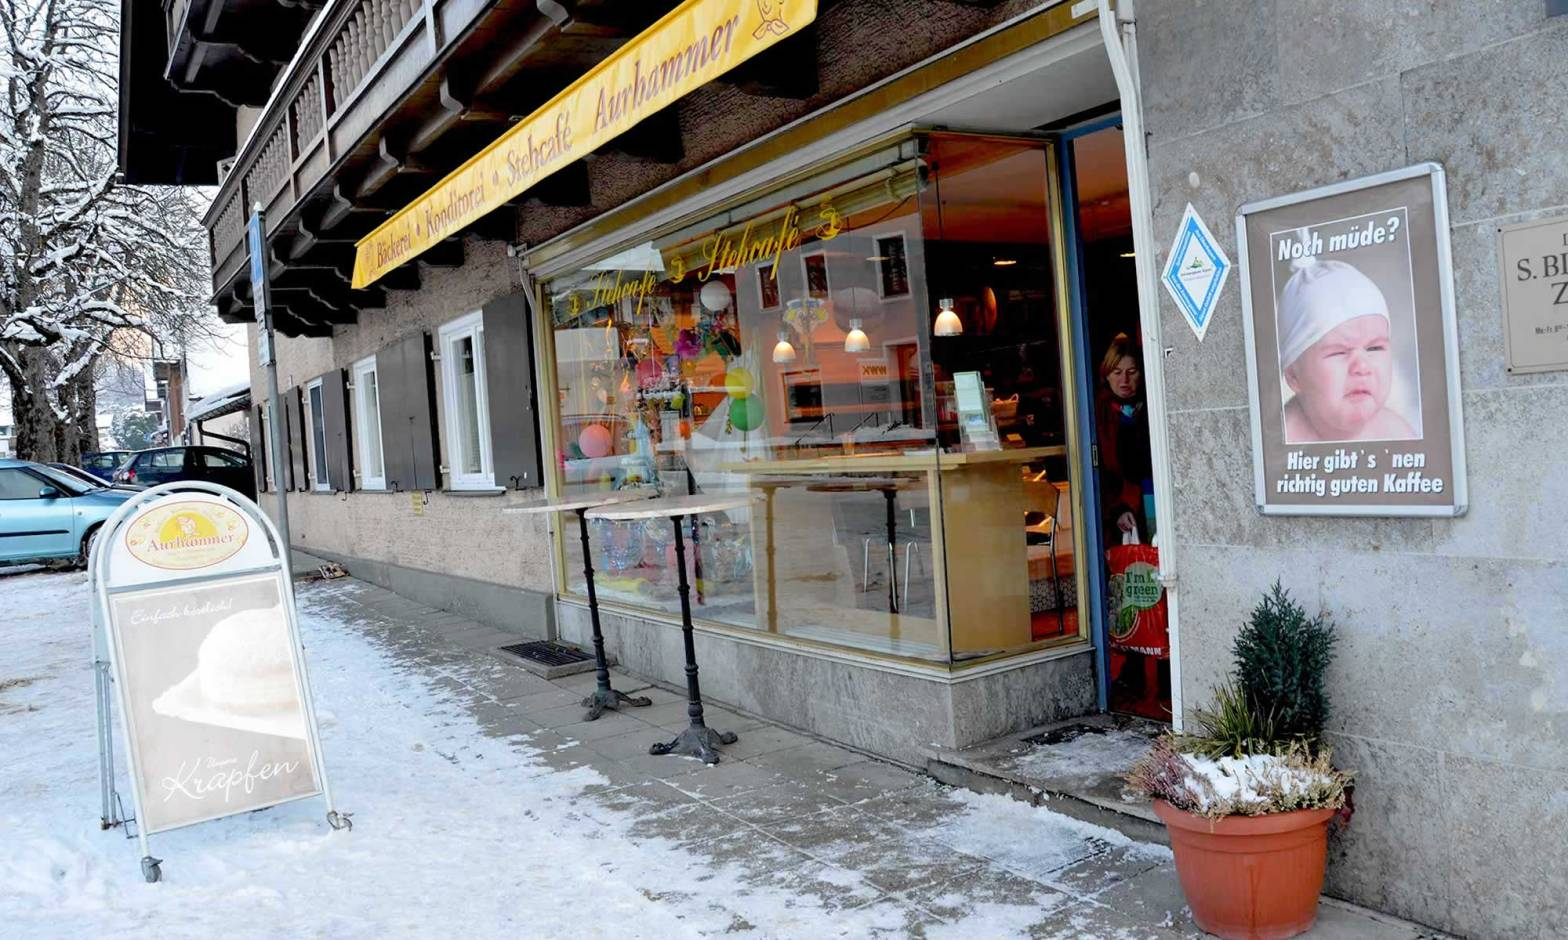 A bakery storefront in Oberammergau, Germany